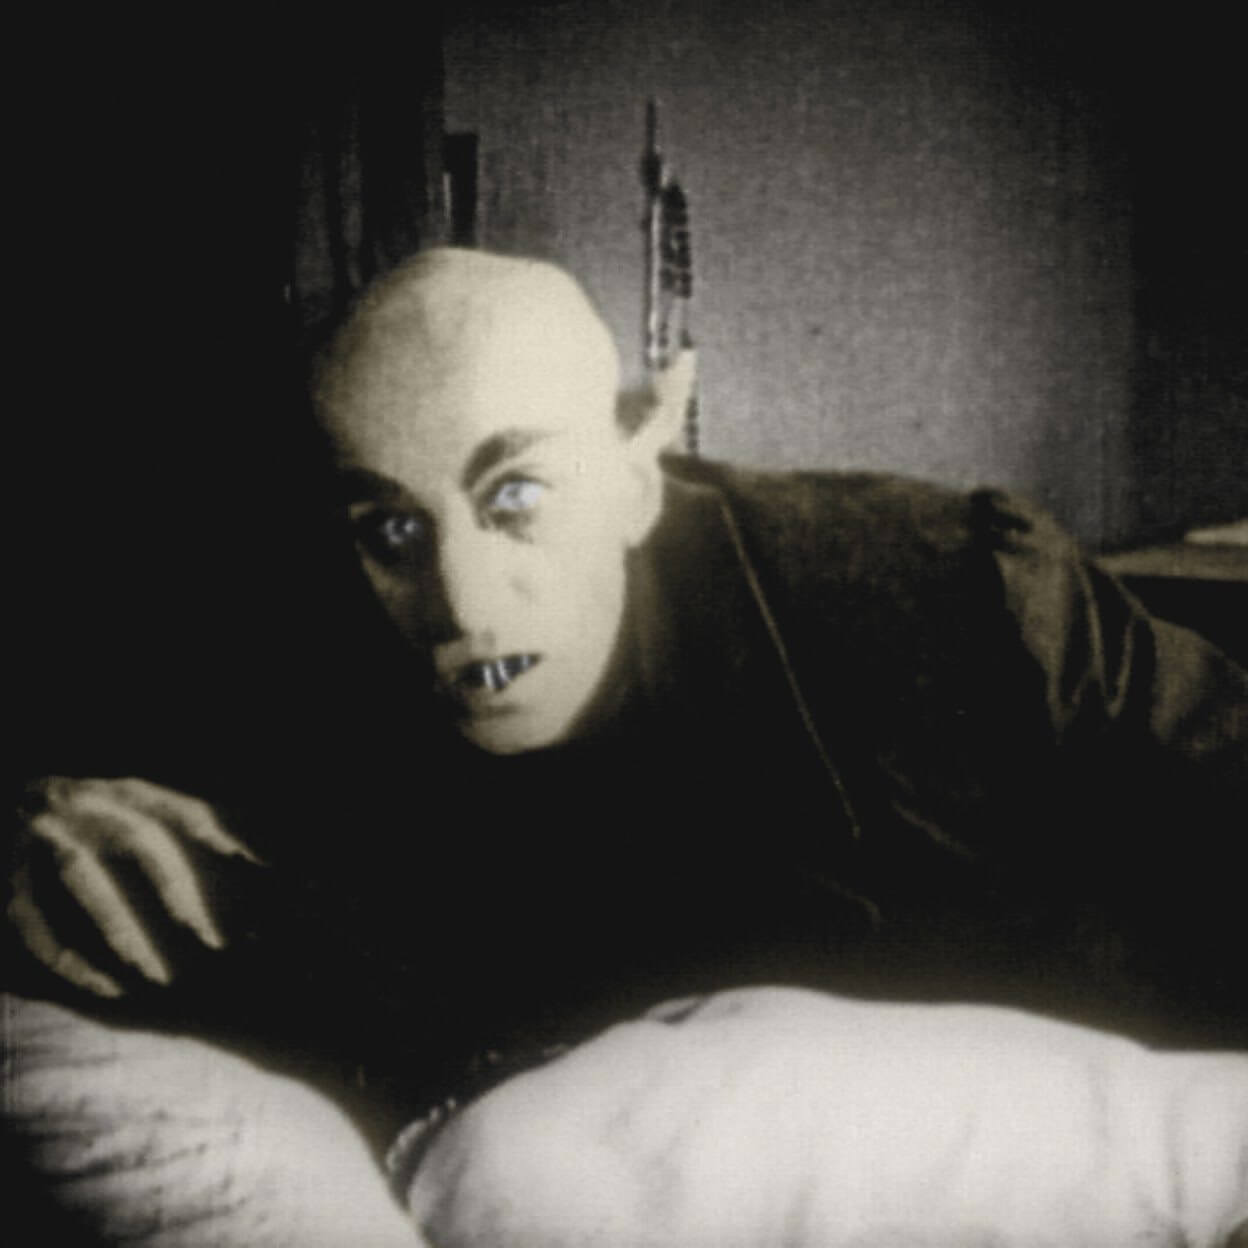 Genetic mutation that causes paleness, light sensitivity may be responsible for legend of vampires